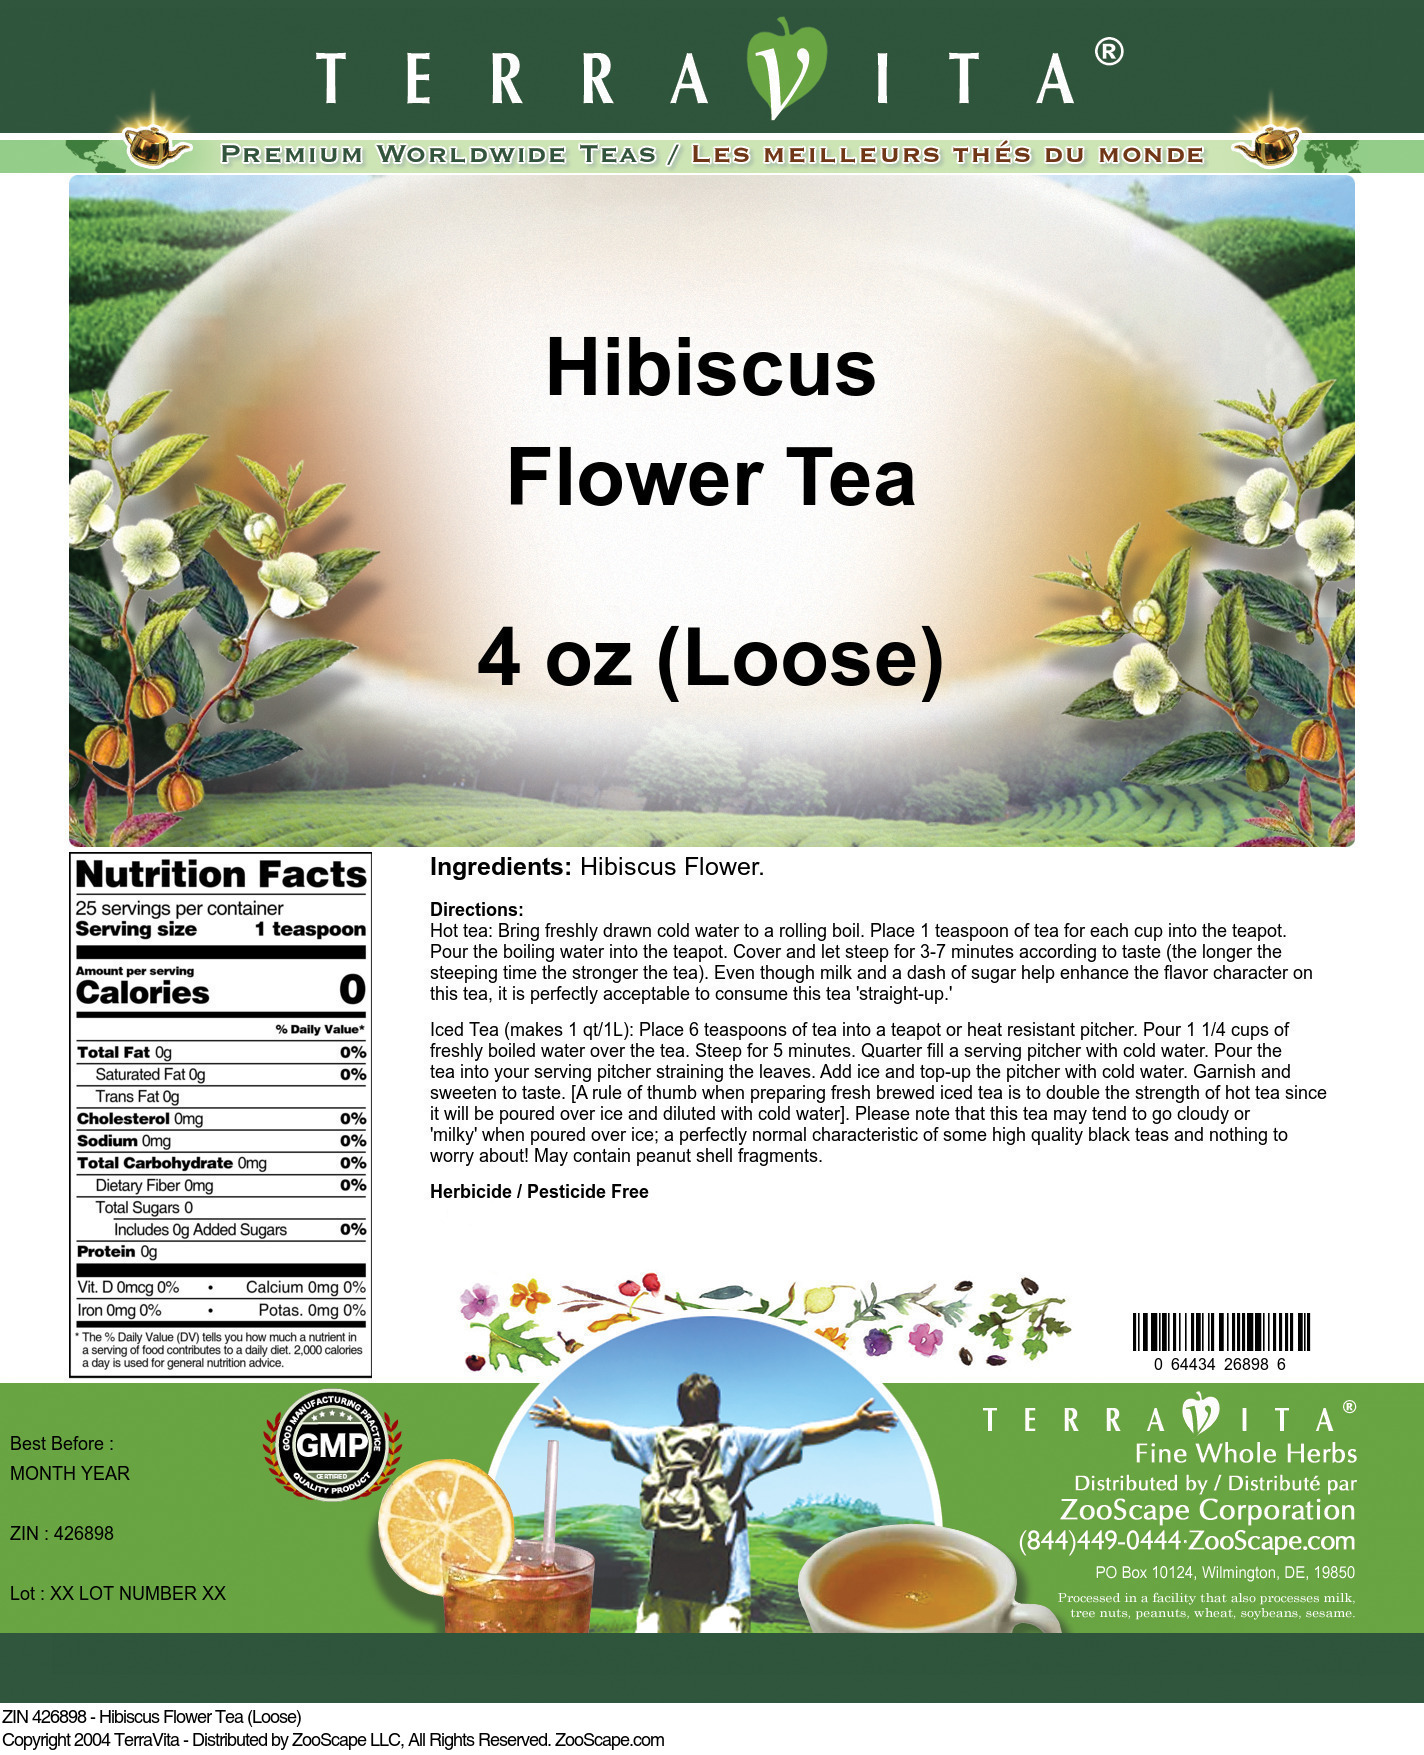 Hibiscus Flower Tea (Loose) - Label